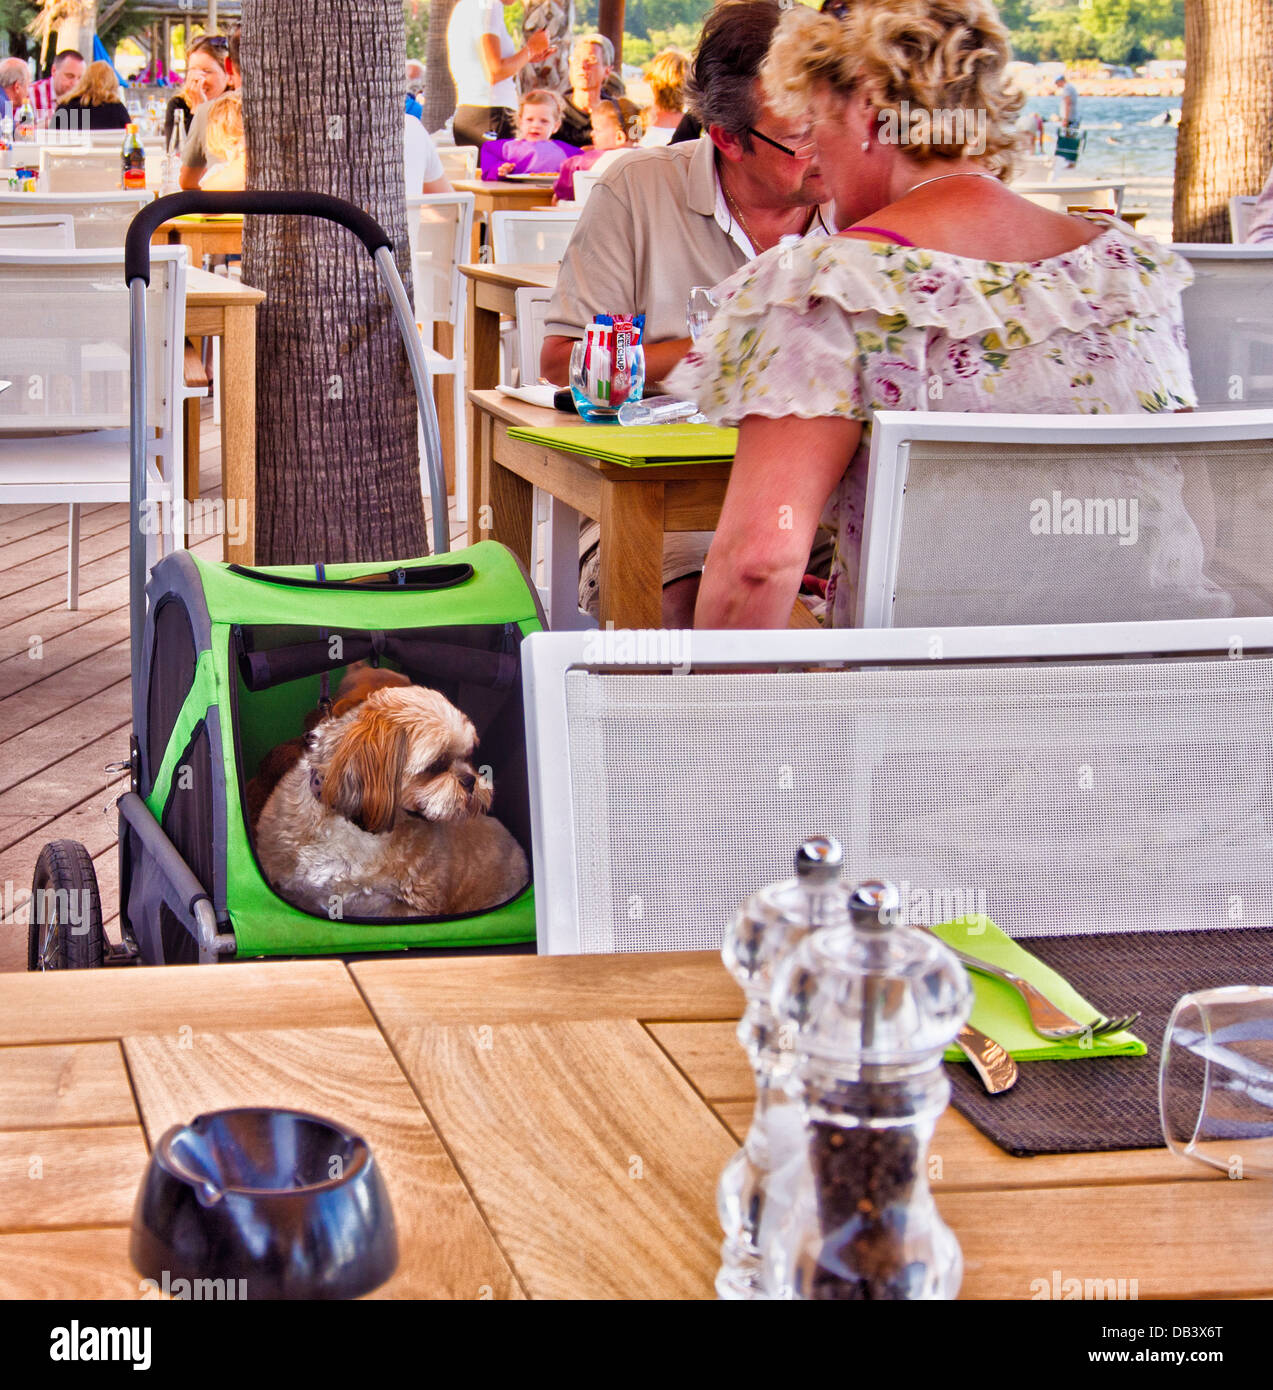 Pampered pet dog sitting in pet pushchair whilst owners sit in restaurant waiting for a meal, Port Grimaud, France - Stock Image